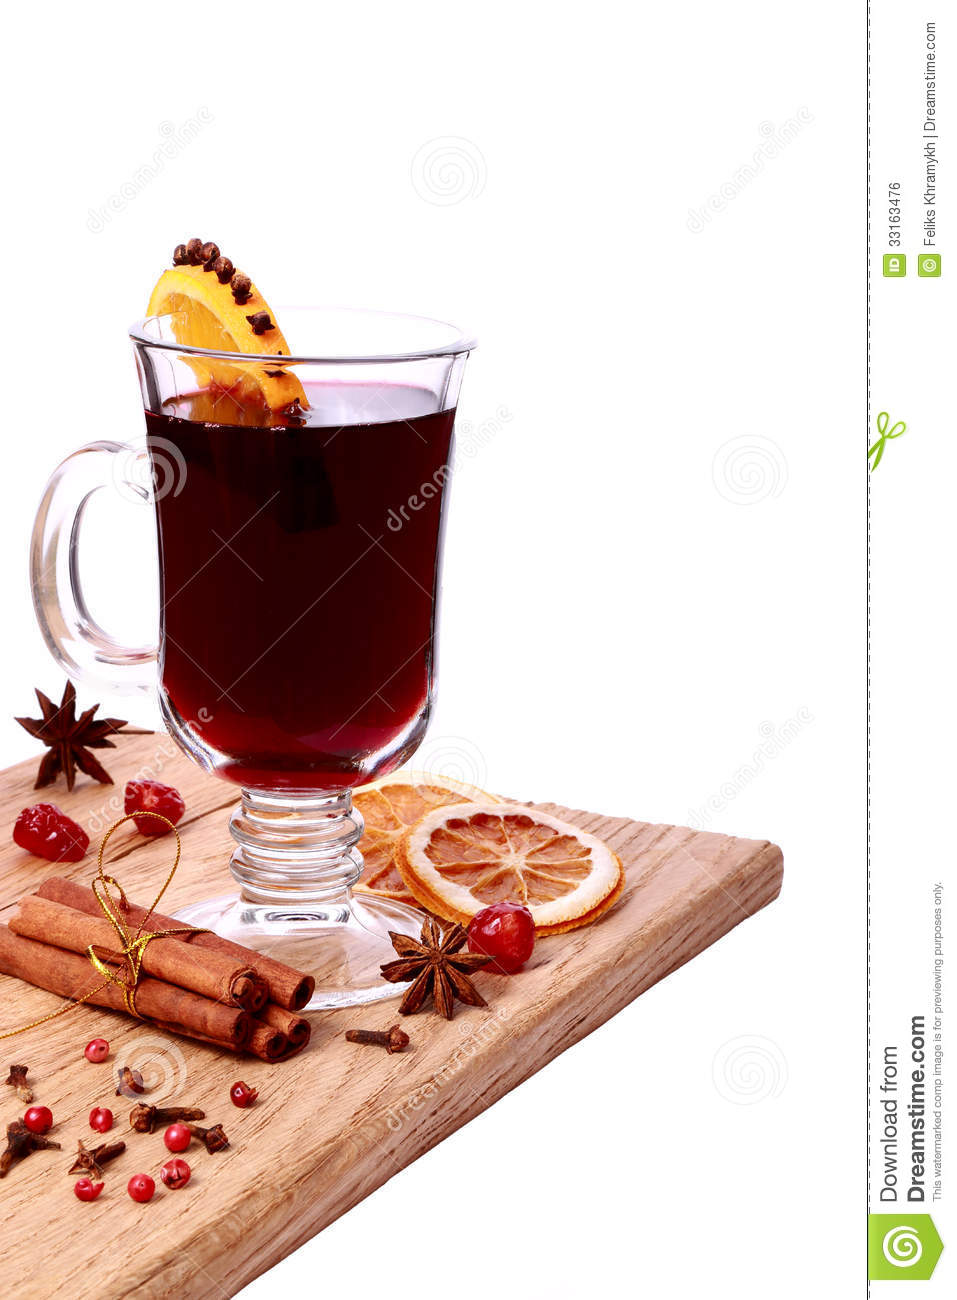 Glass Of Mulled Wine And Ingredients On A Wooden Table Royalty.